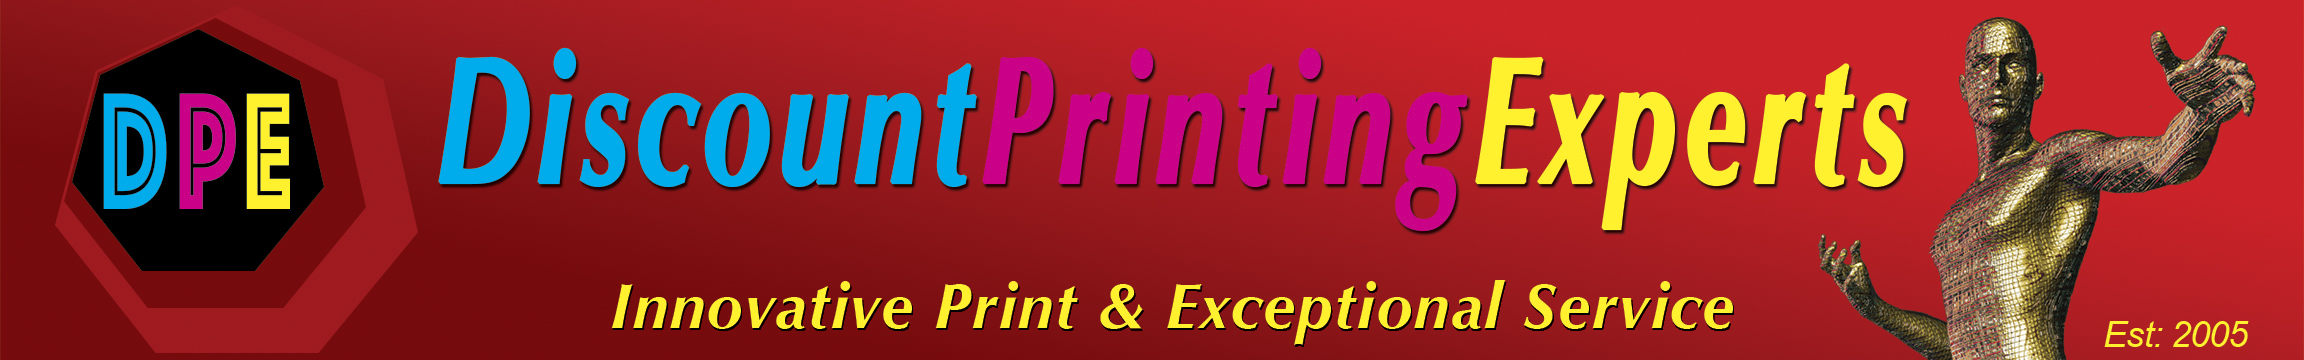 Discount Printing Experts